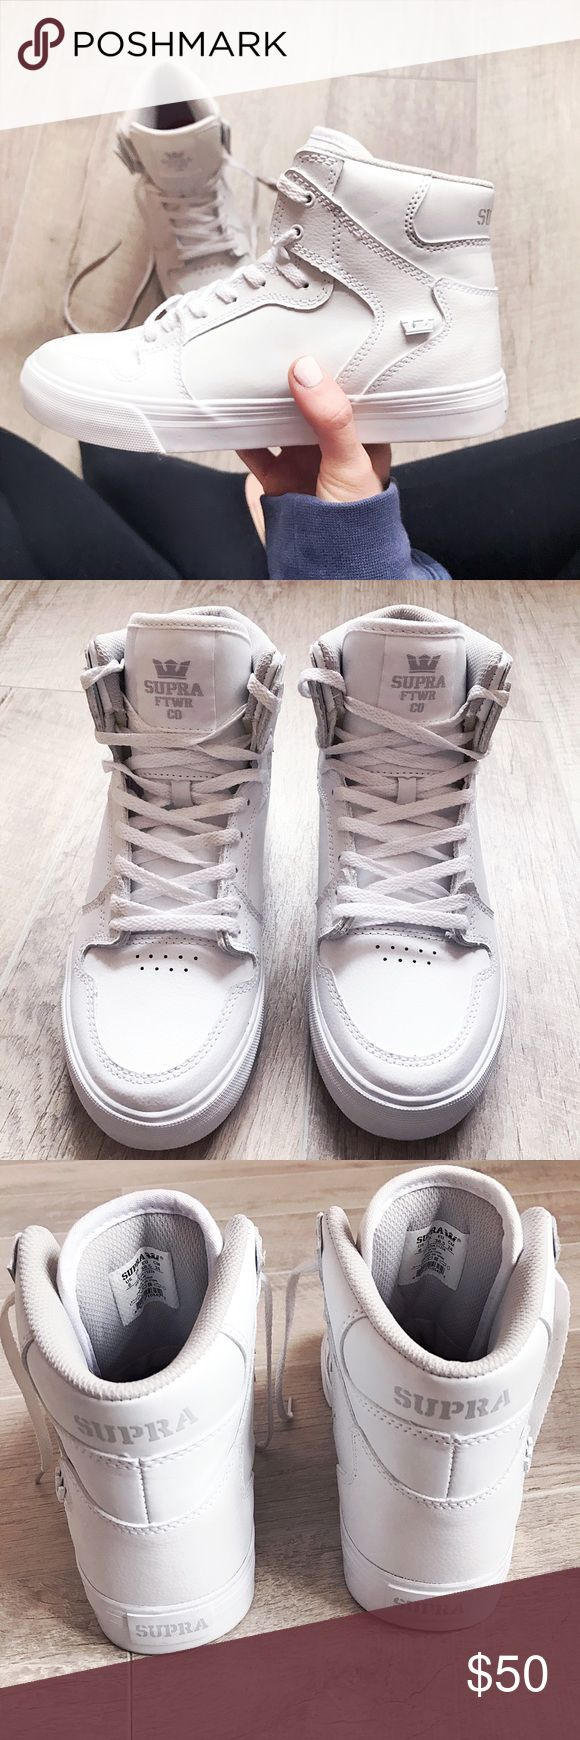 SUPRA High tops from Zumiez✔️ Street style savvy!!✔️white leather SUPRA FTWR CO High tops! Red designer insoles✔️ red designer bottom soles✔️lace up front✔️1' leather bottom sole✔️sneaker height 5 1/2'. These are a kids US 6. Women's 7.5. Worn for a split second look amazing! Right shoelace looks as though it might be a bit discolored! No biggie can hardly see unless you point it out! Offers are welcome✌no trades thank you! Supra Shoes Sneakers